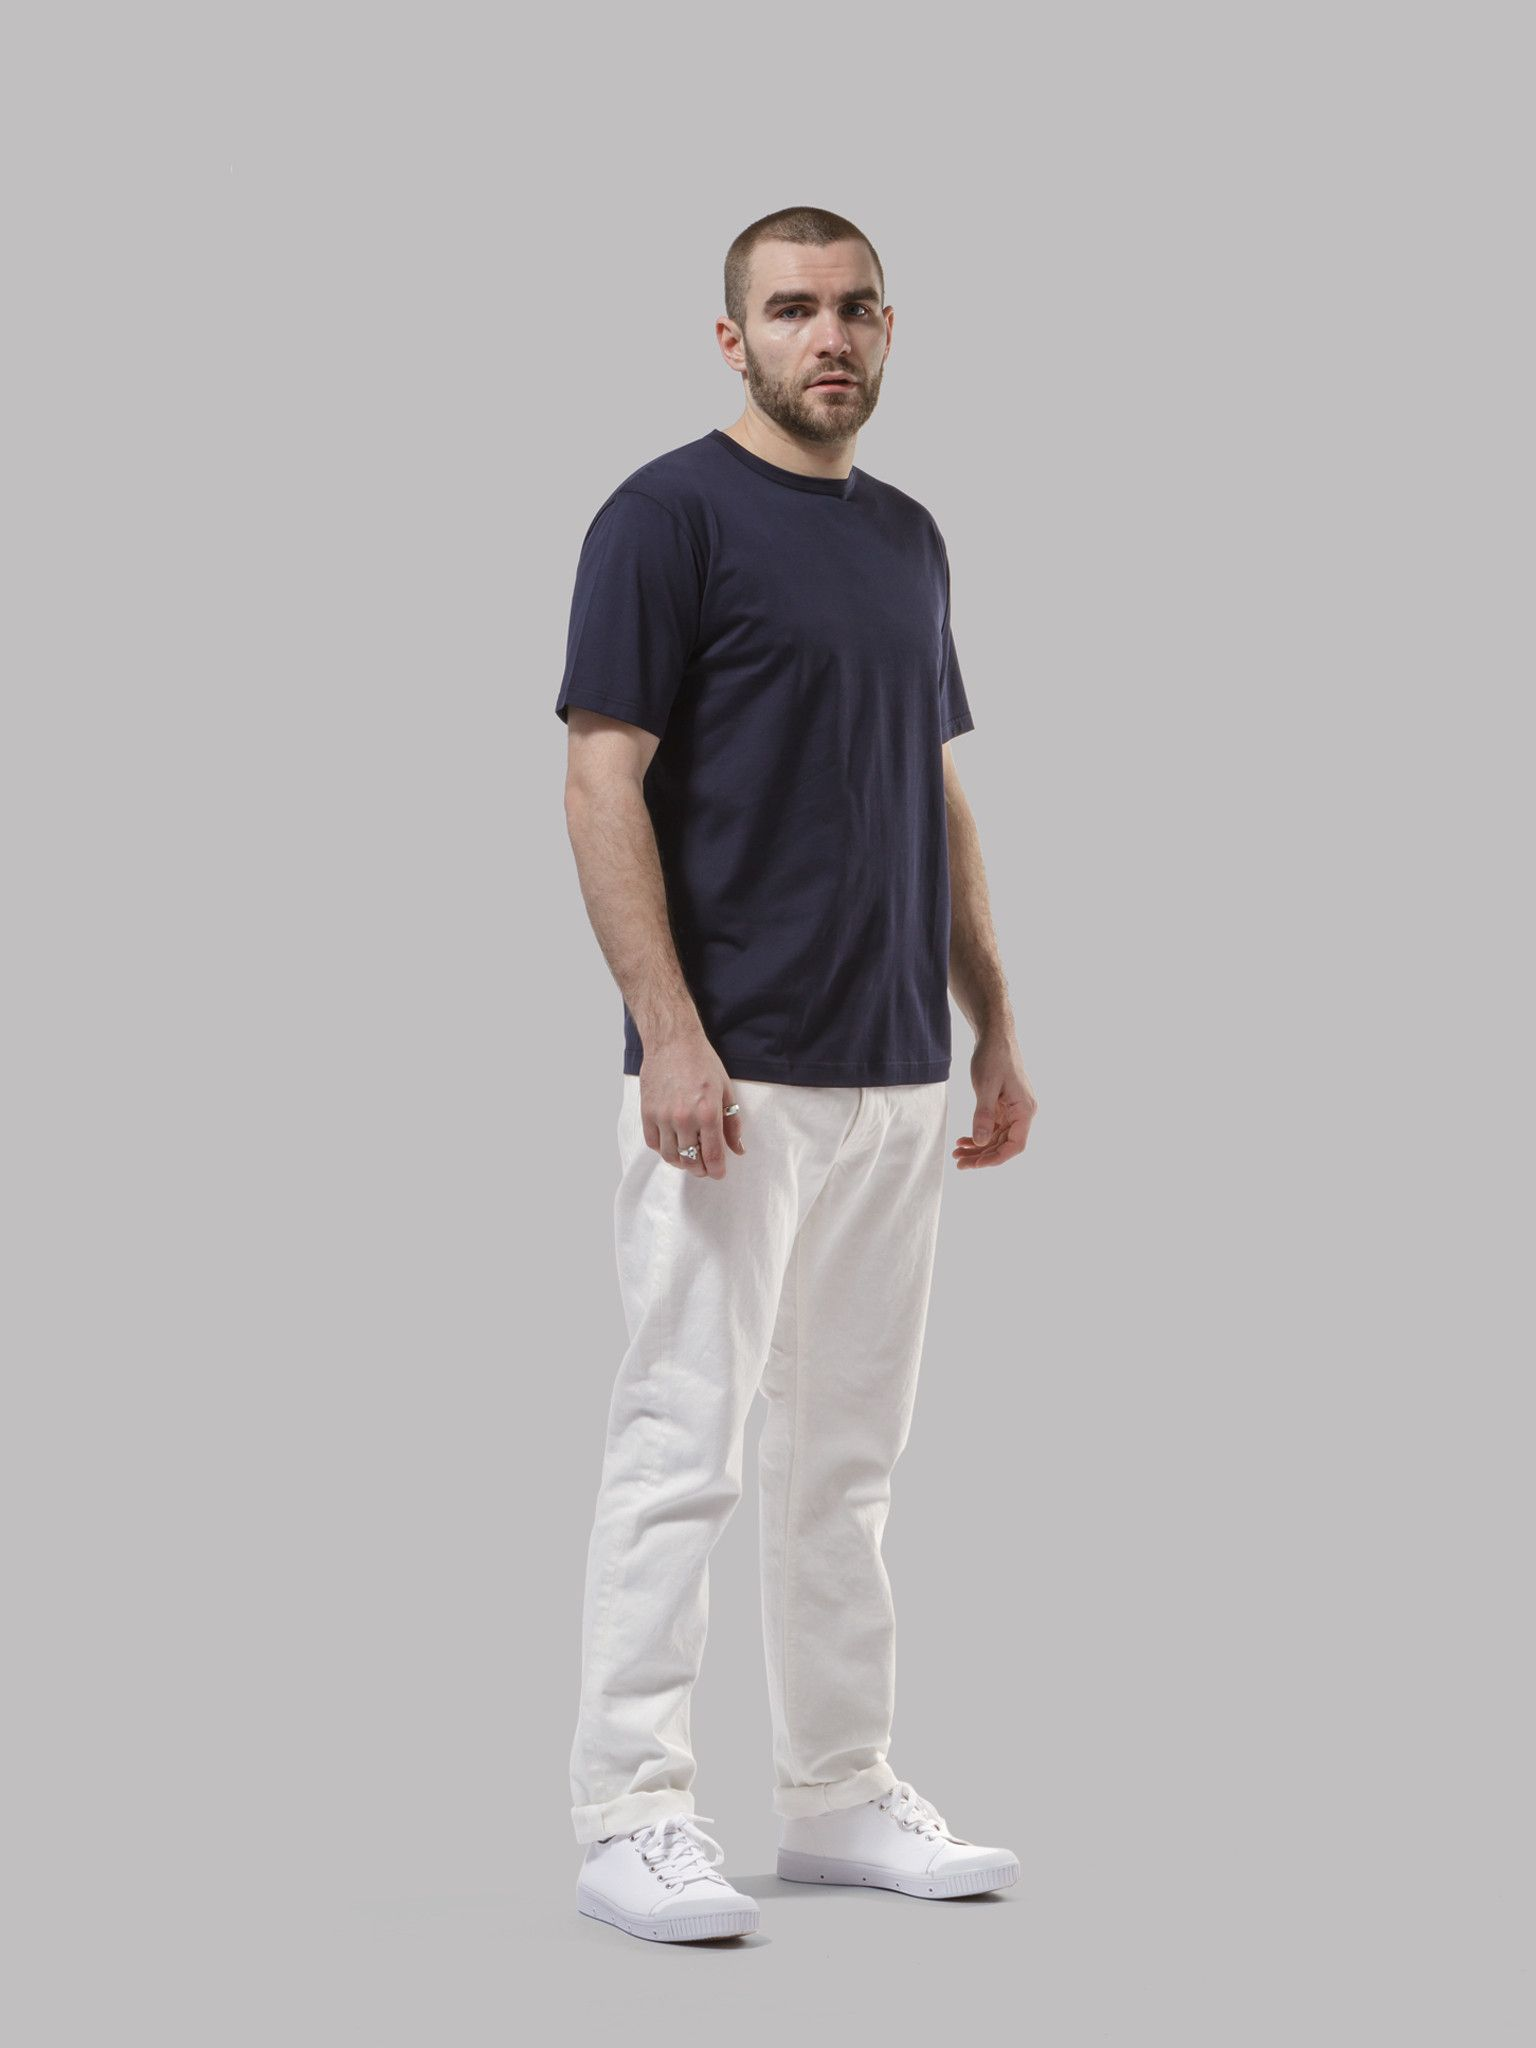 orSlow 107 Ivy Fit Jeans (White) | Jeans fit, White jeans, Jeans